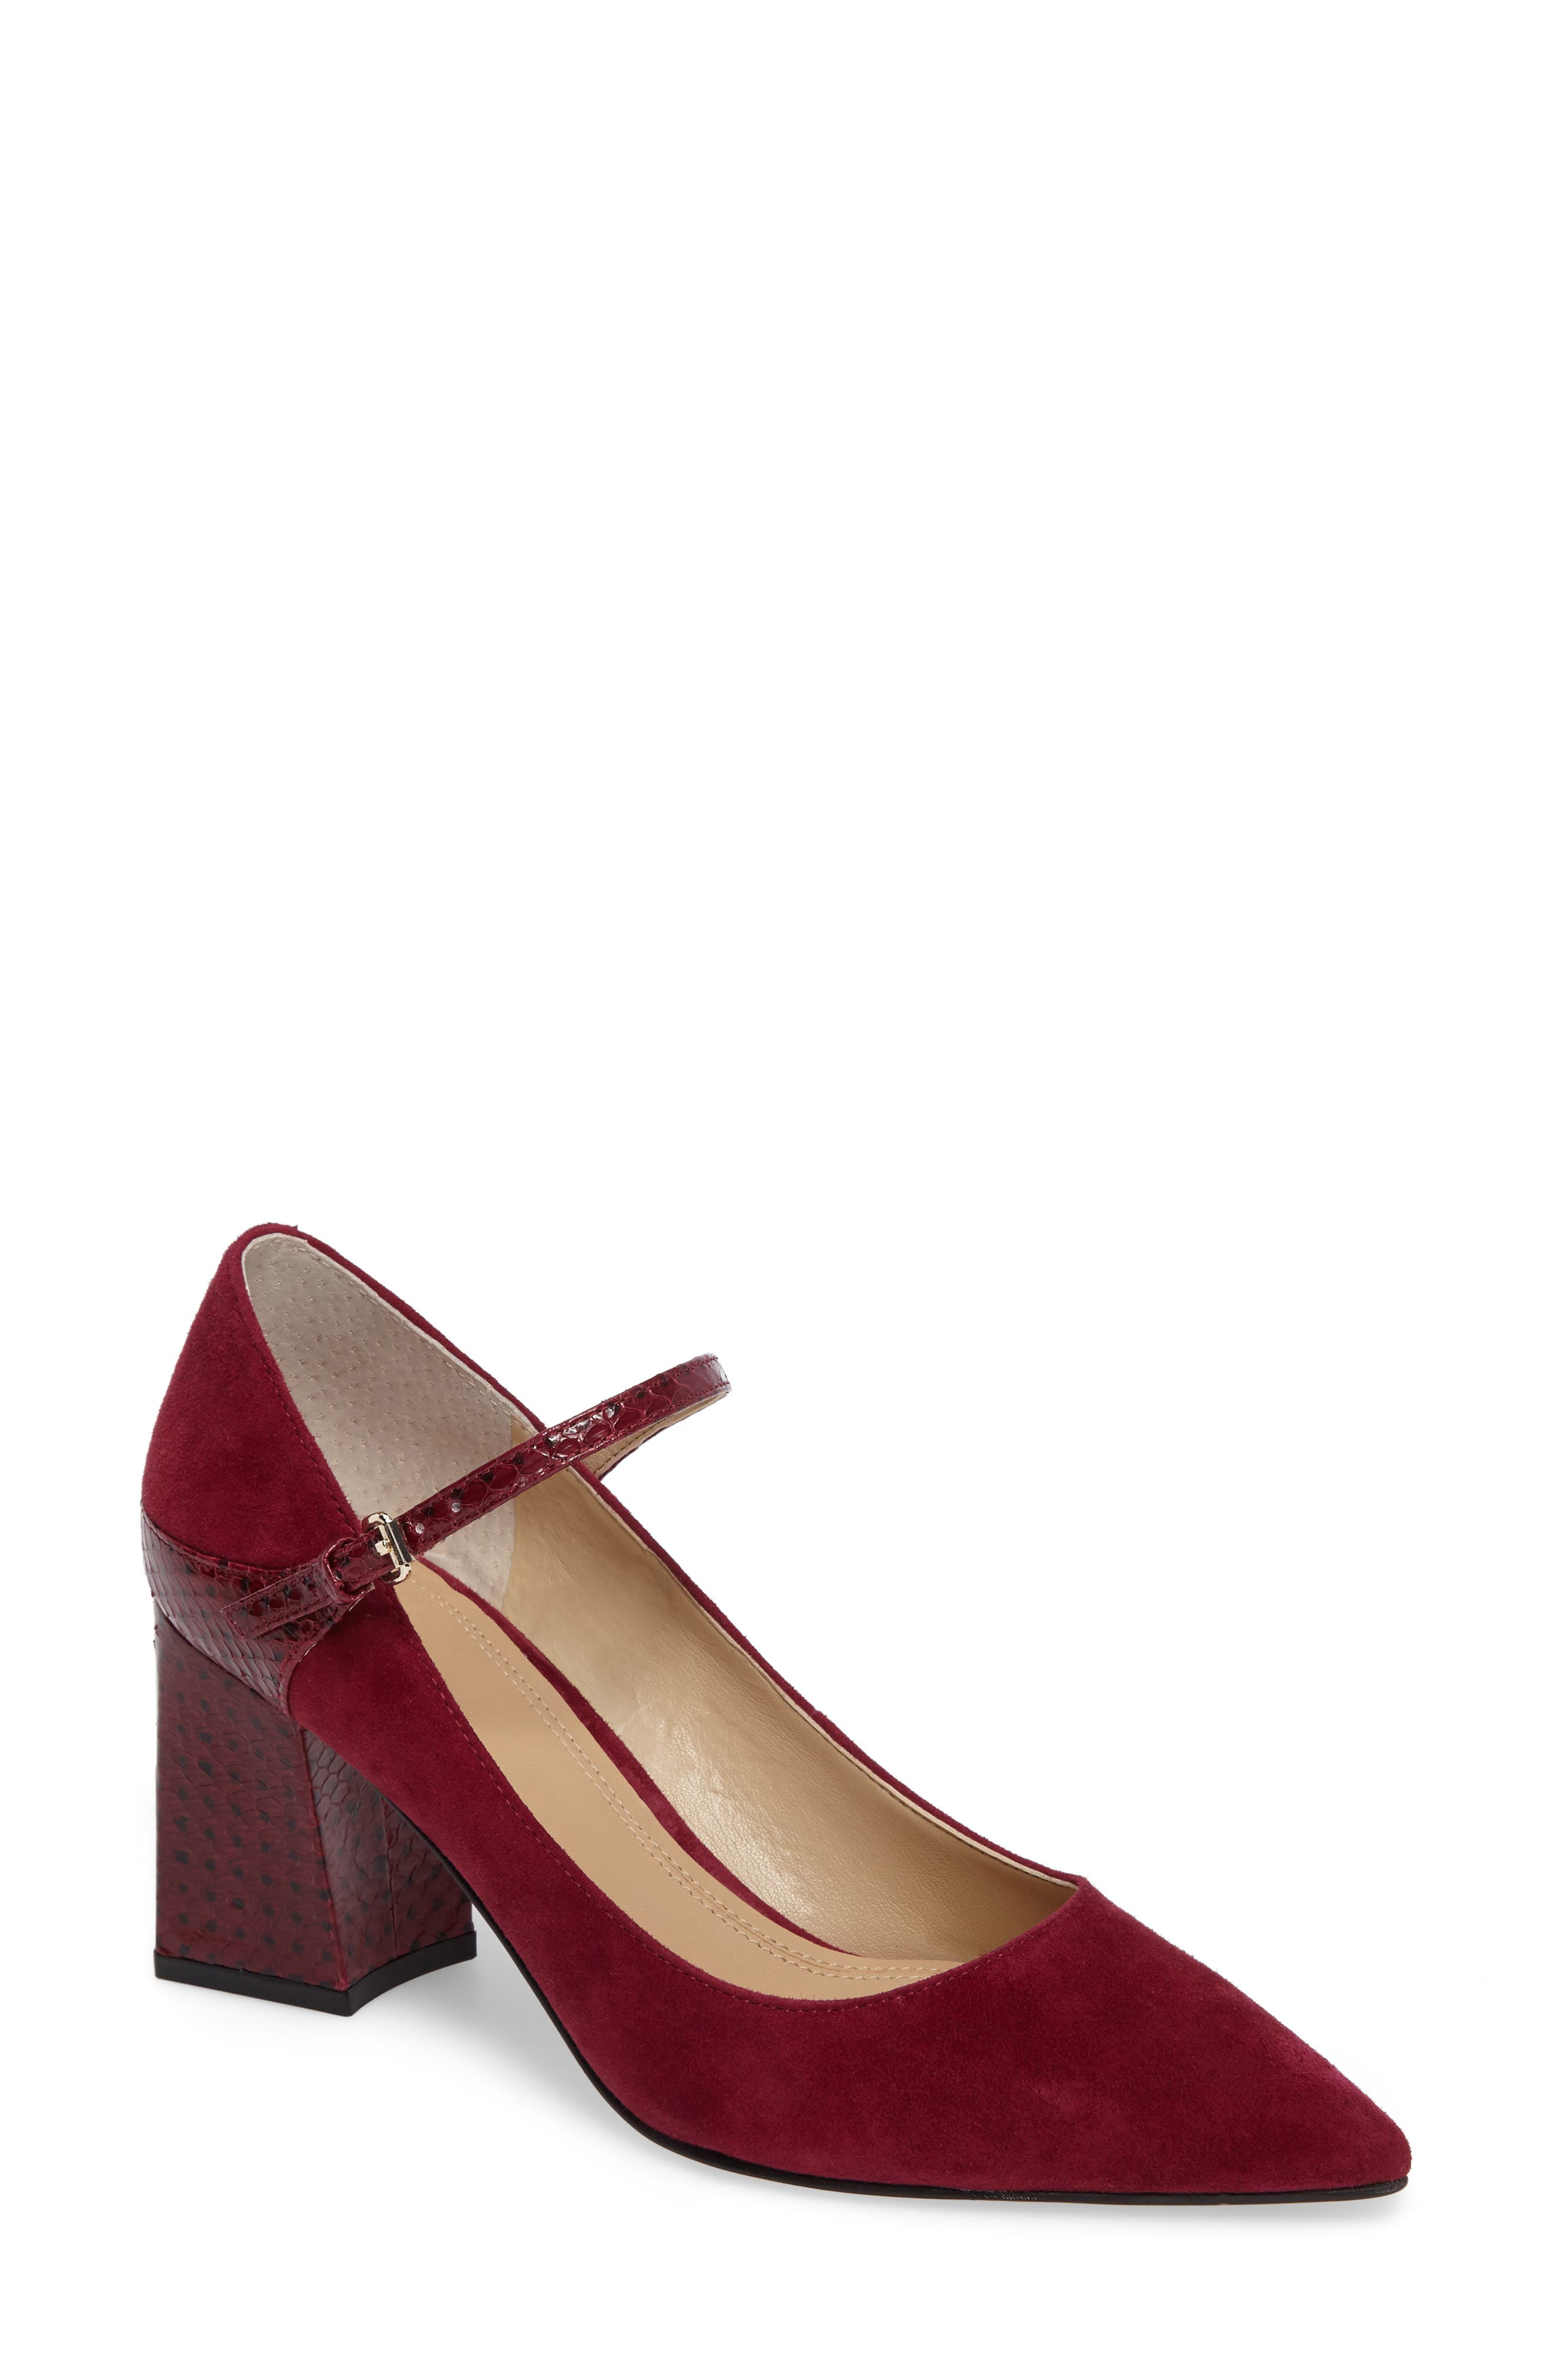 Zullys Snake Embossed Mary Jane Pump,                             Main thumbnail 1, color,                             Berry/ Berry Leather